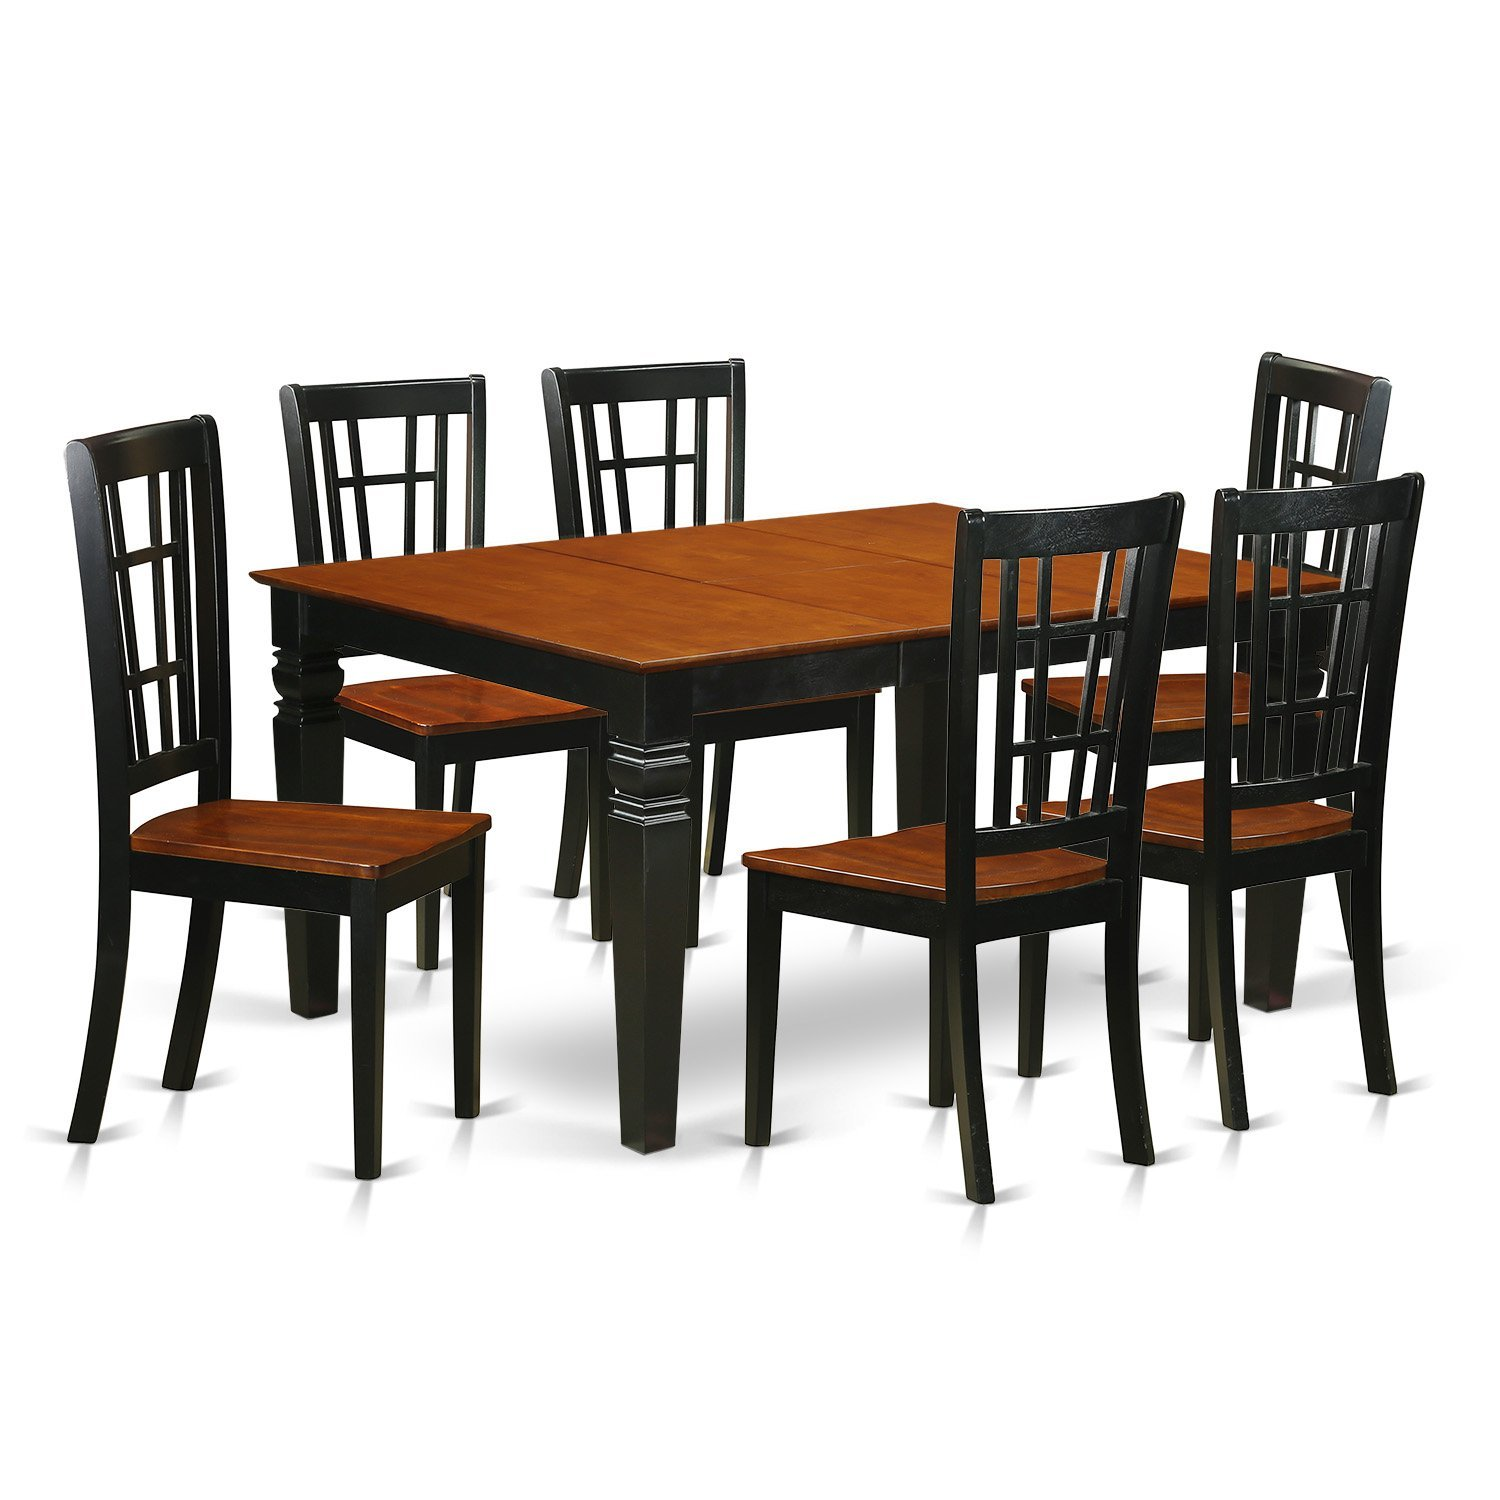 East West Furniture Weston WENI7-BCH-W 7 Pc Kitchen Set Table and 6 Wood Dining Chairs, Black